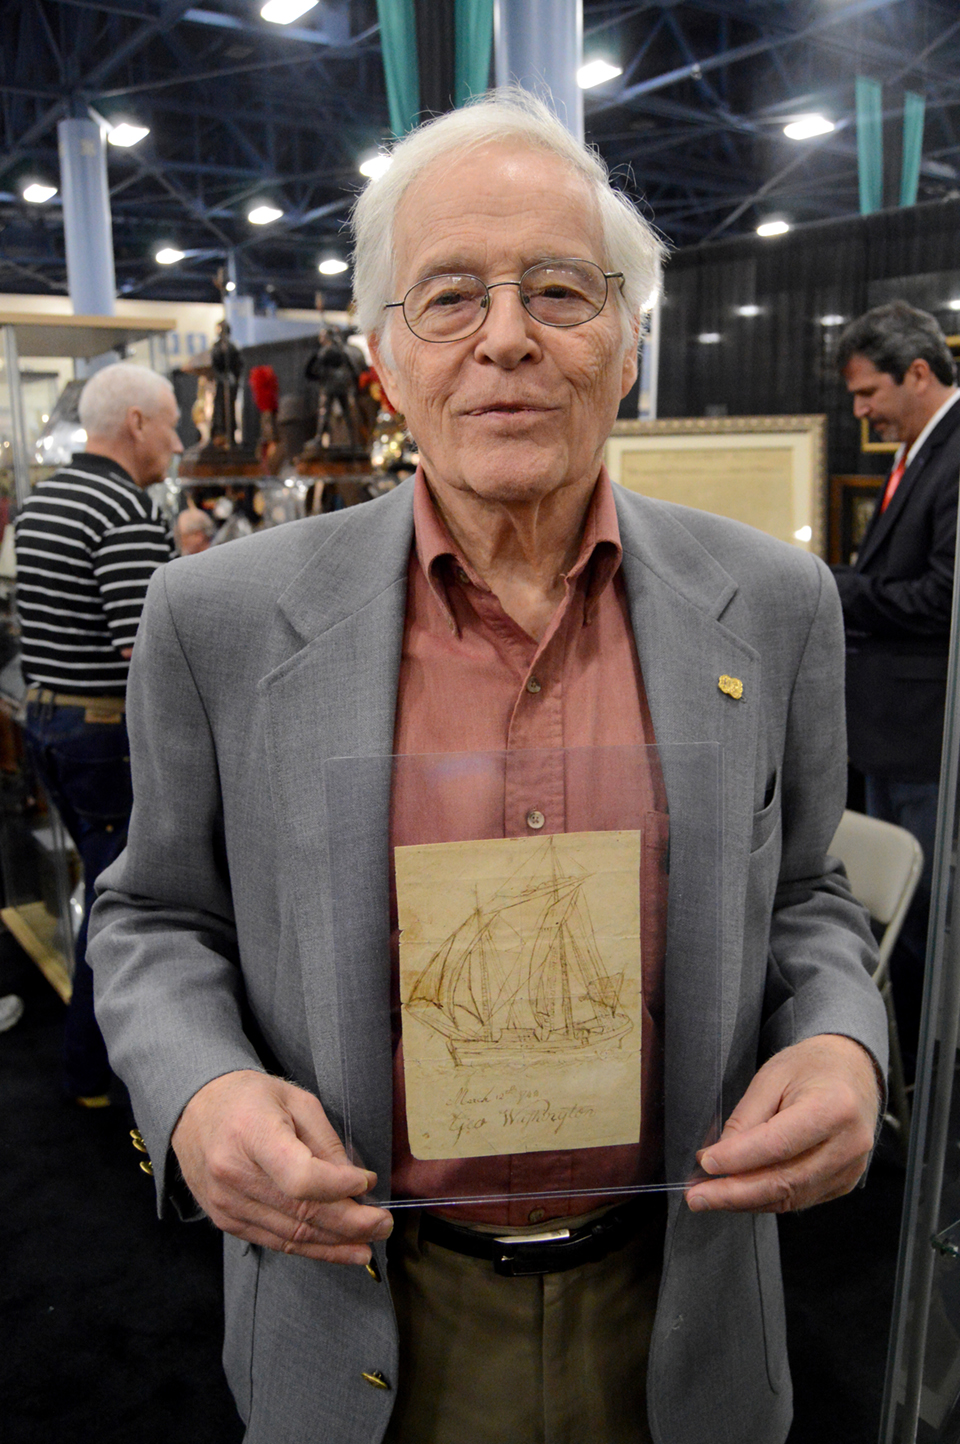 Tom Lingenfelter, Heritage Collectors Society, Doylestown, Penn., was offering<br>a drawing of a two-masted ship by a 10-year-old George Washington.